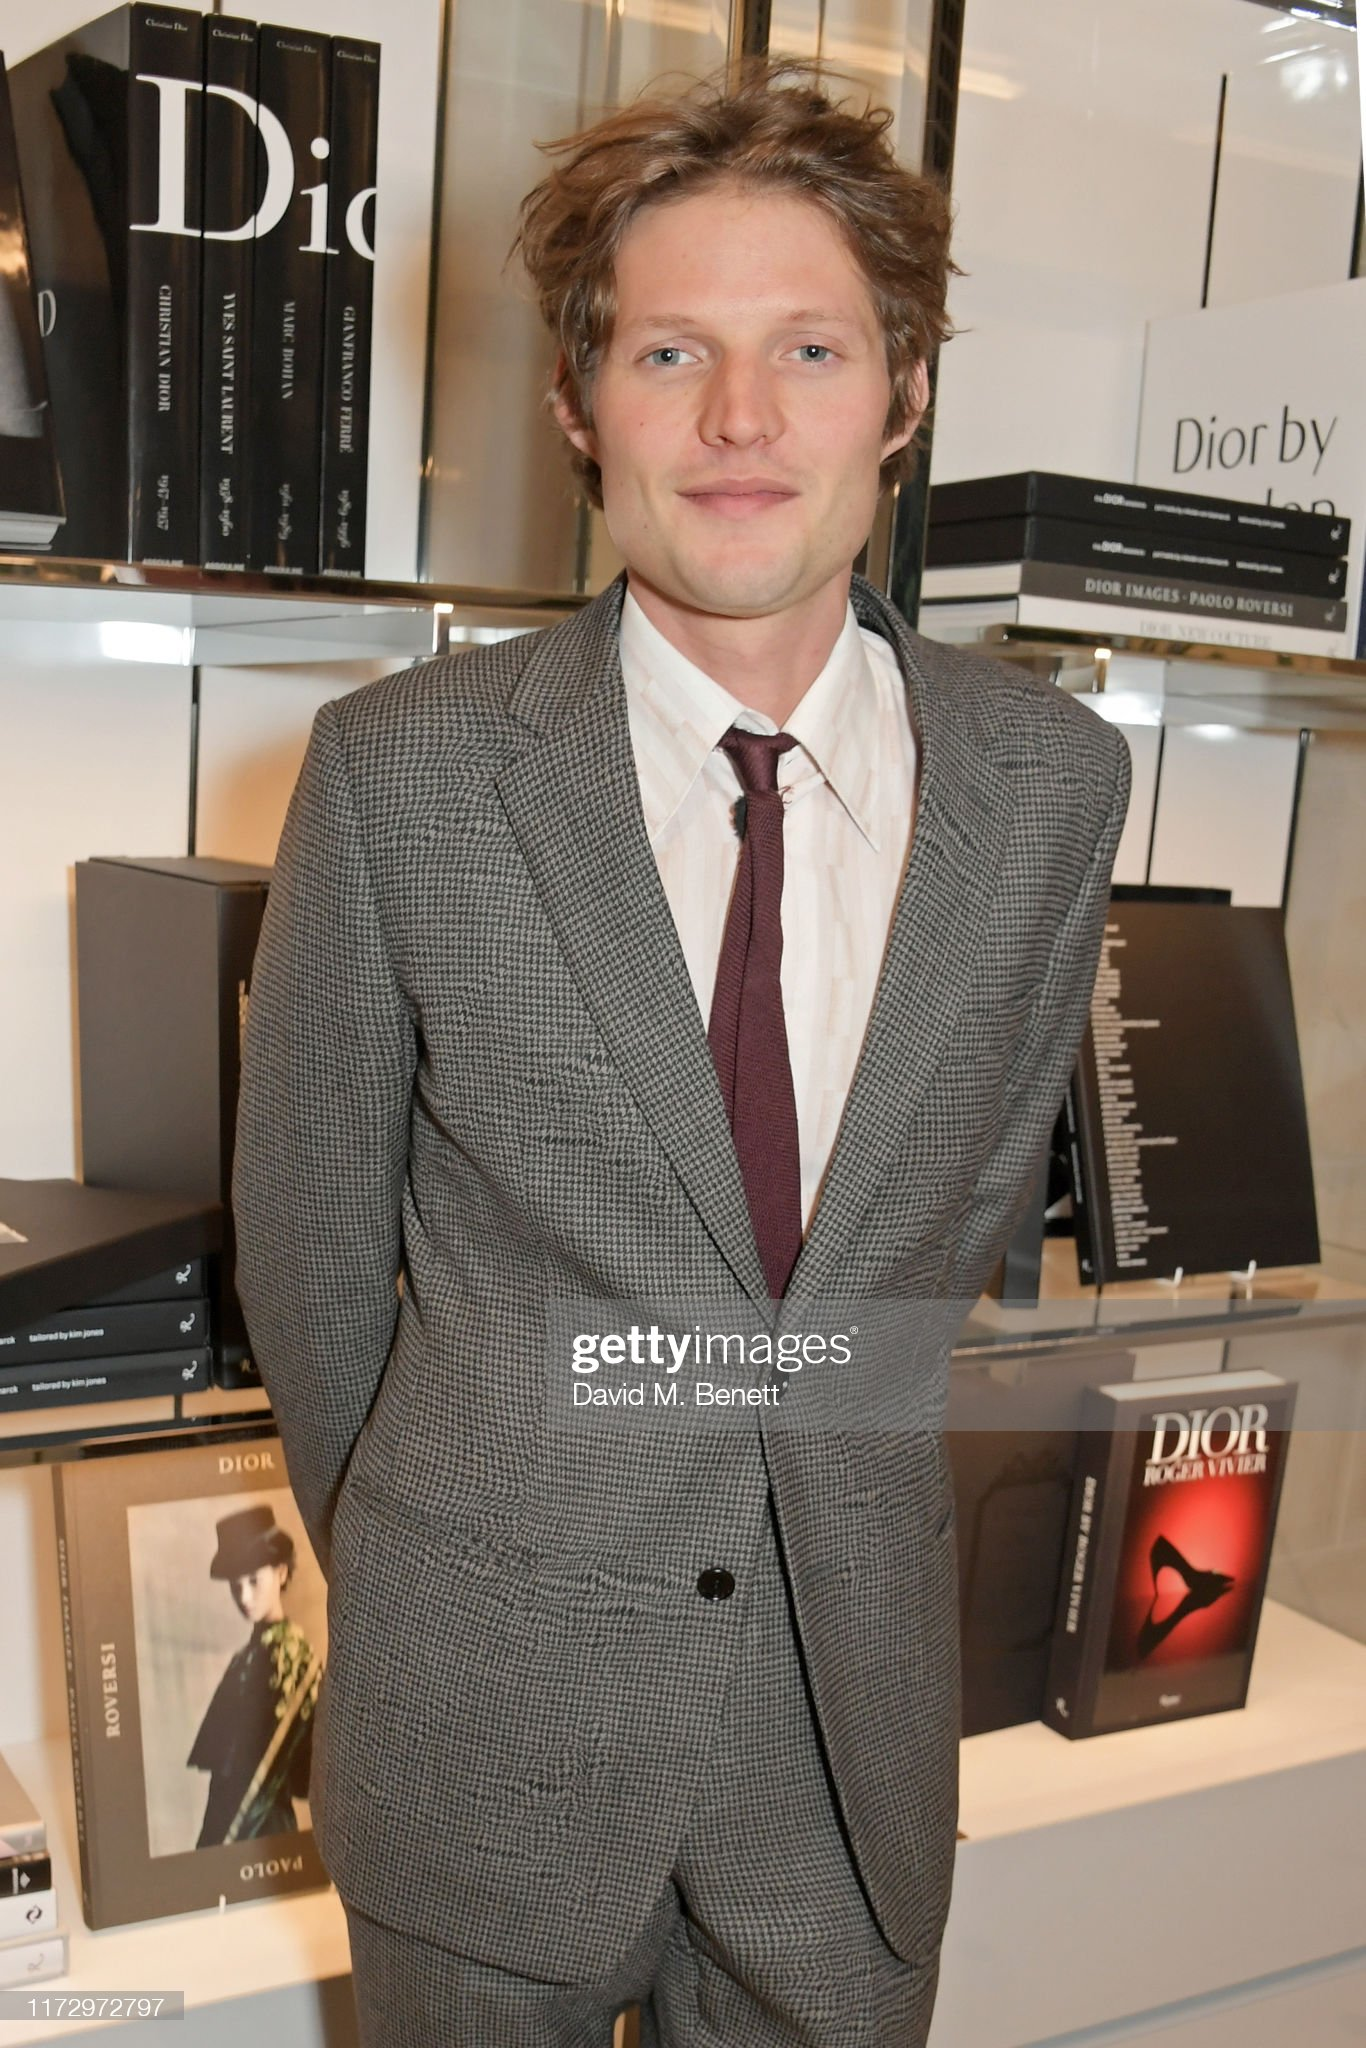 https://media.gettyimages.com/photos/nikolai-von-bismarck-attends-the-dior-sessions-book-launch-on-october-picture-id1172972797?s=2048x2048